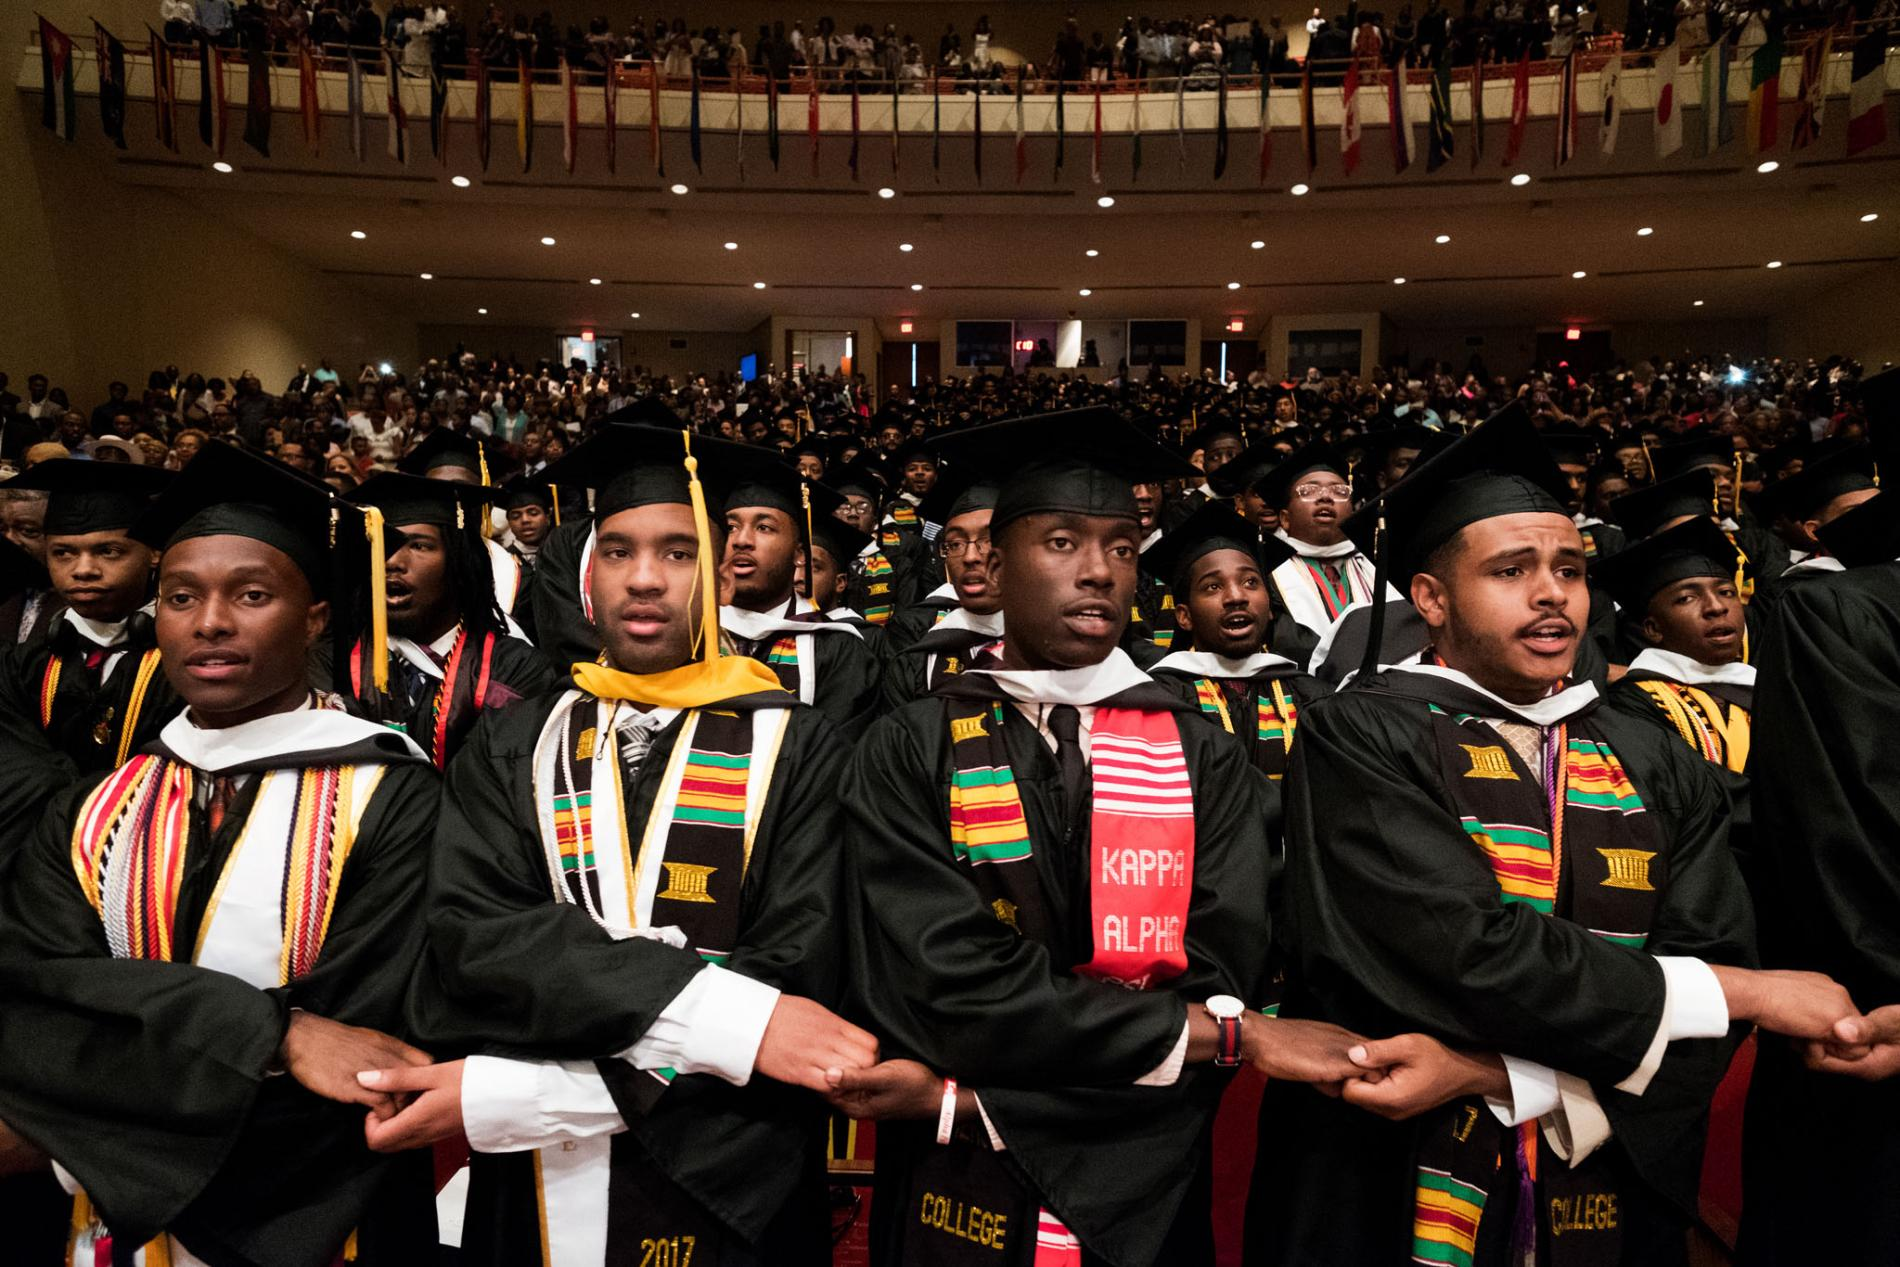 Historically Black colleges fight back after decades of underfunding 6/16/21